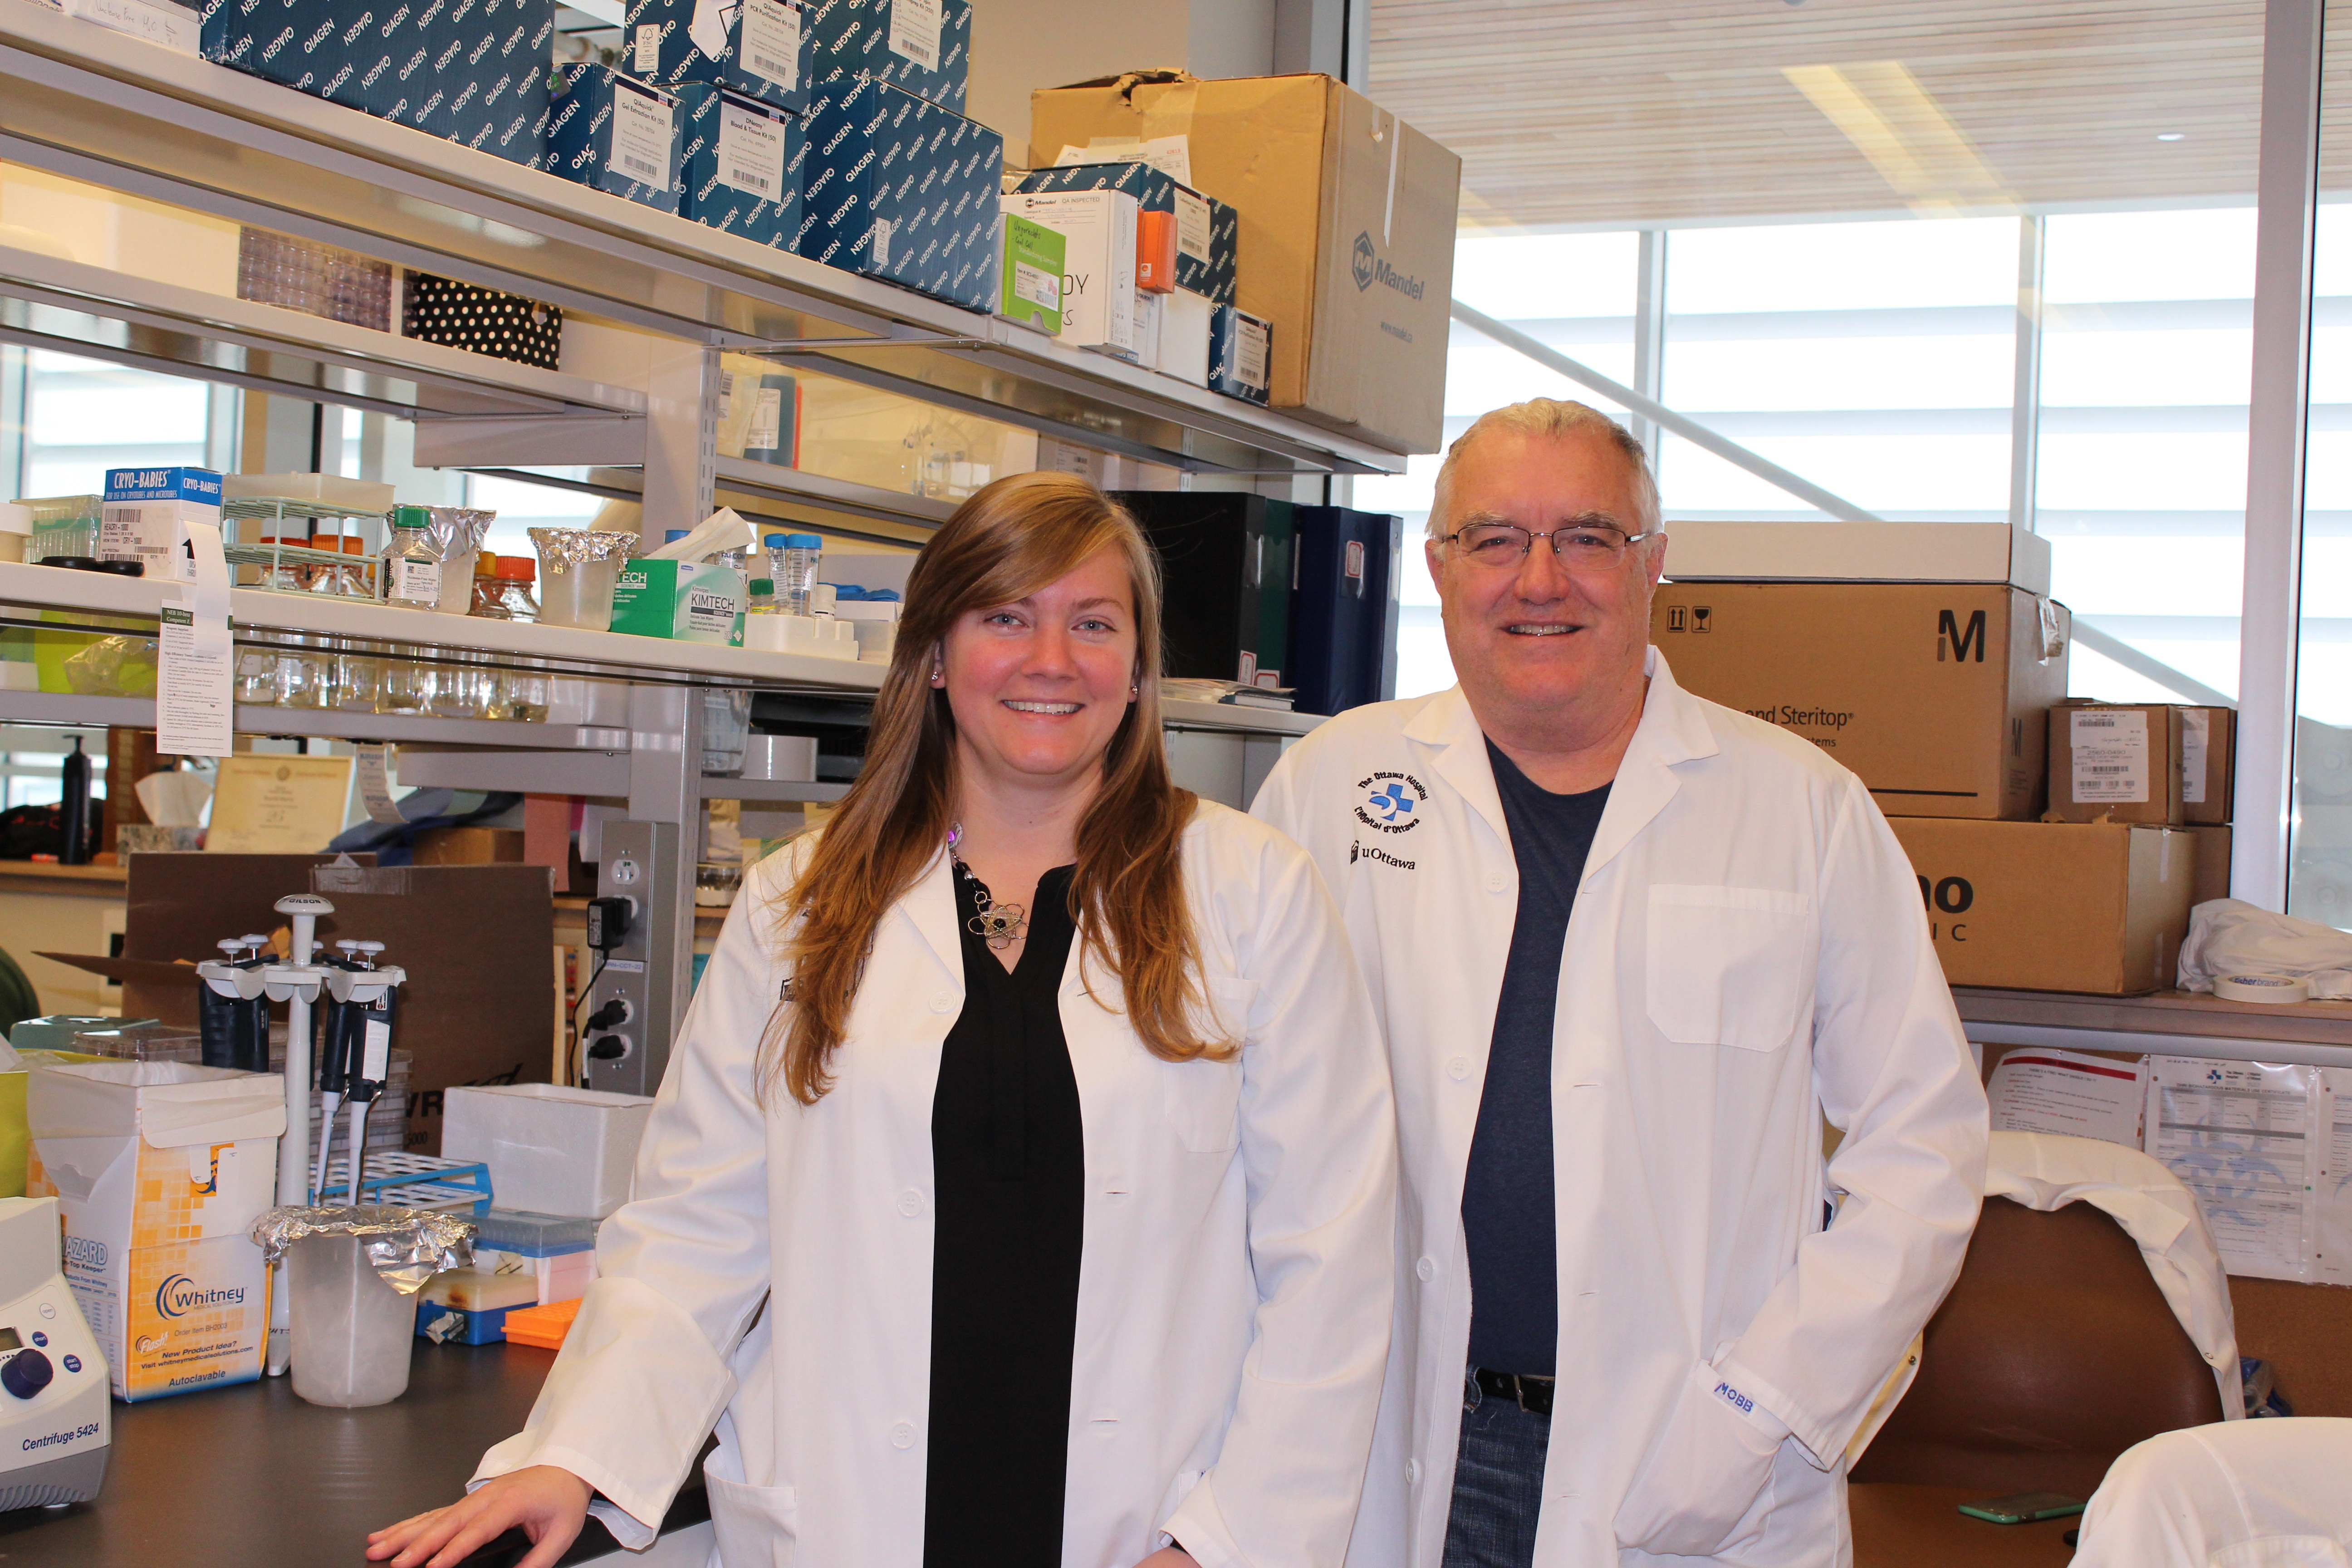 A woman and man stand, in white coats, in a research laboratory.